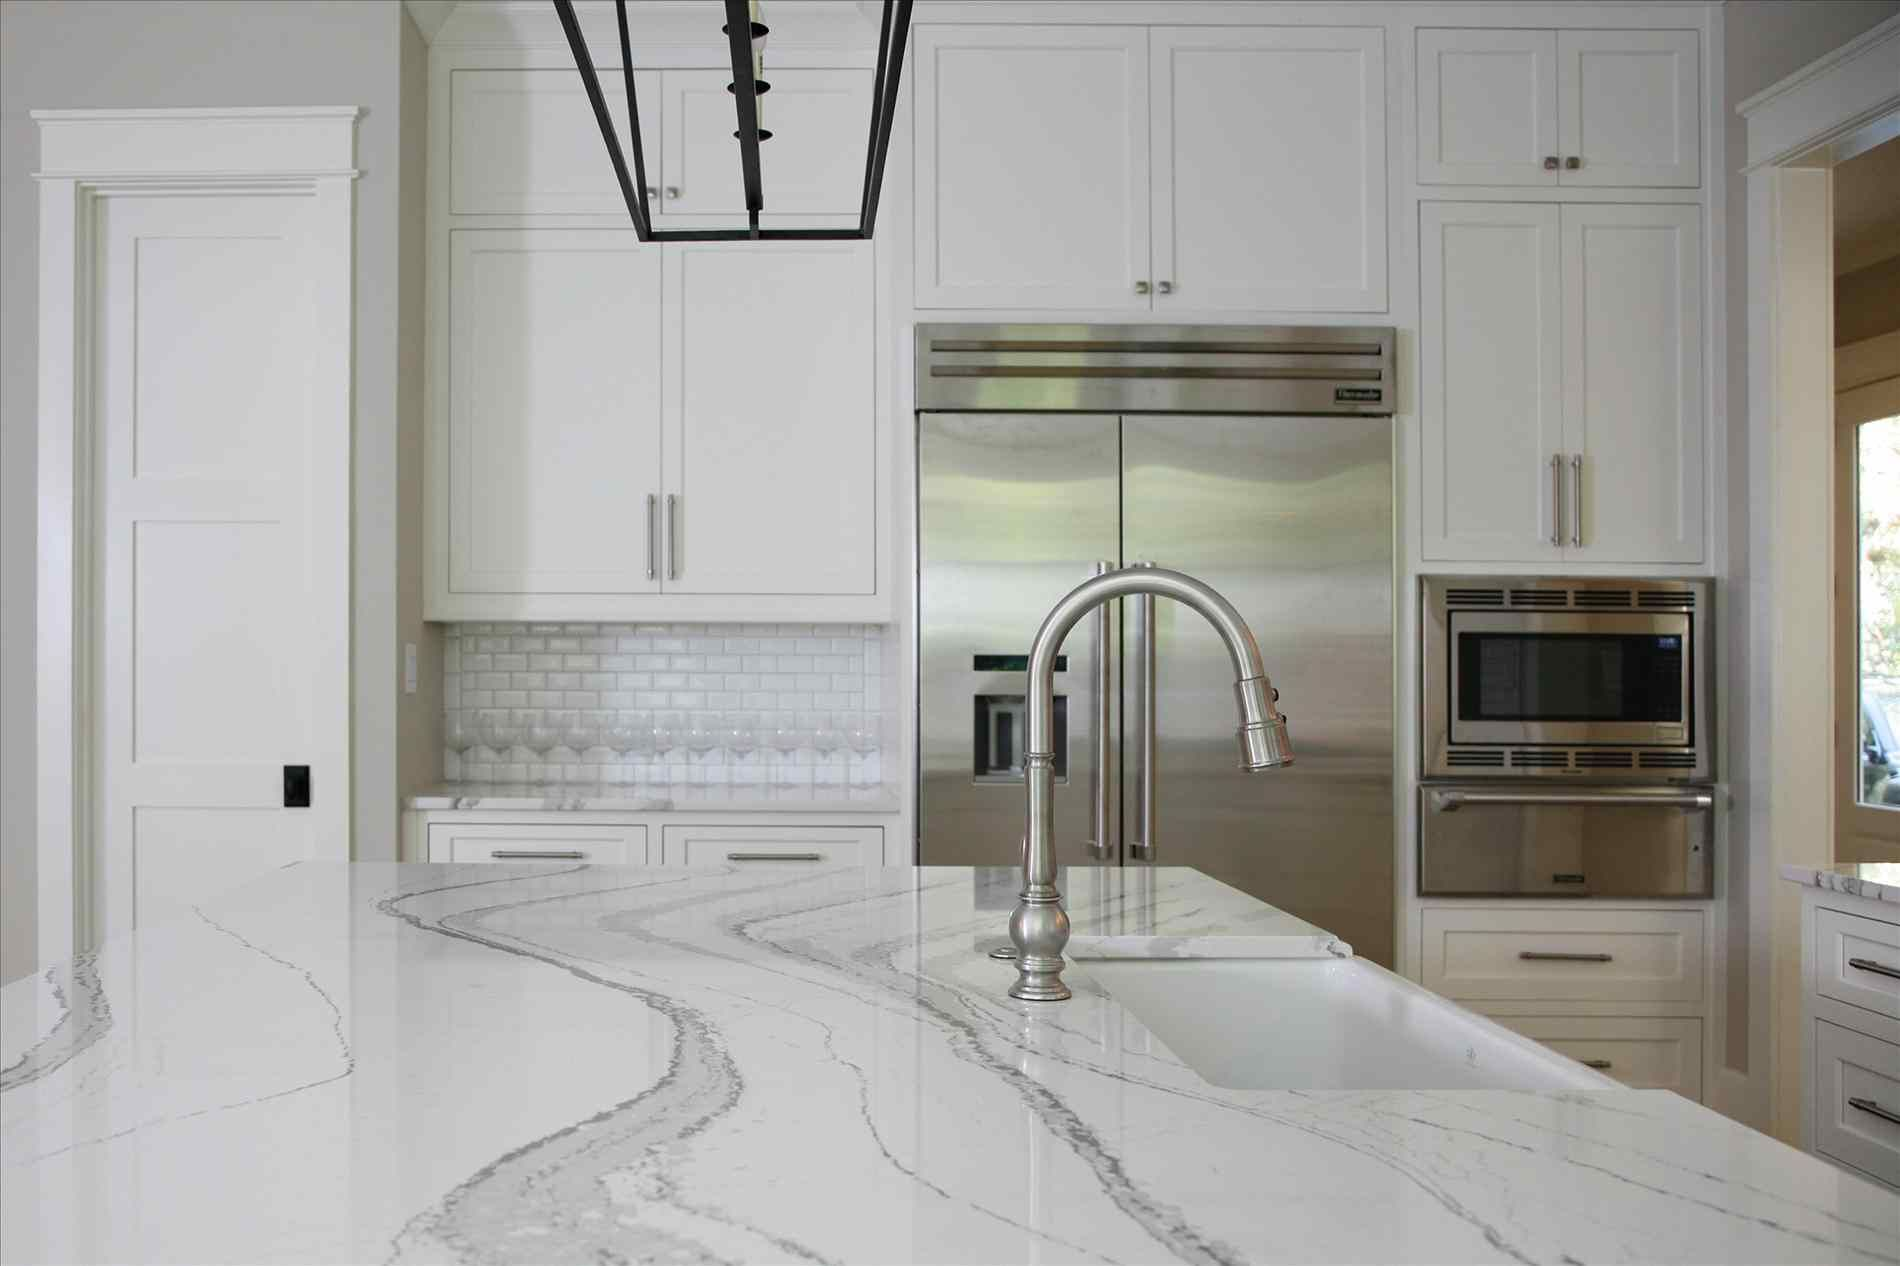 black white kitchen ideas island on also cabinet sink enchanting flooring countertops top stool with for of quartz your ceramics tap wooden countertop and yo chrome plus decoration